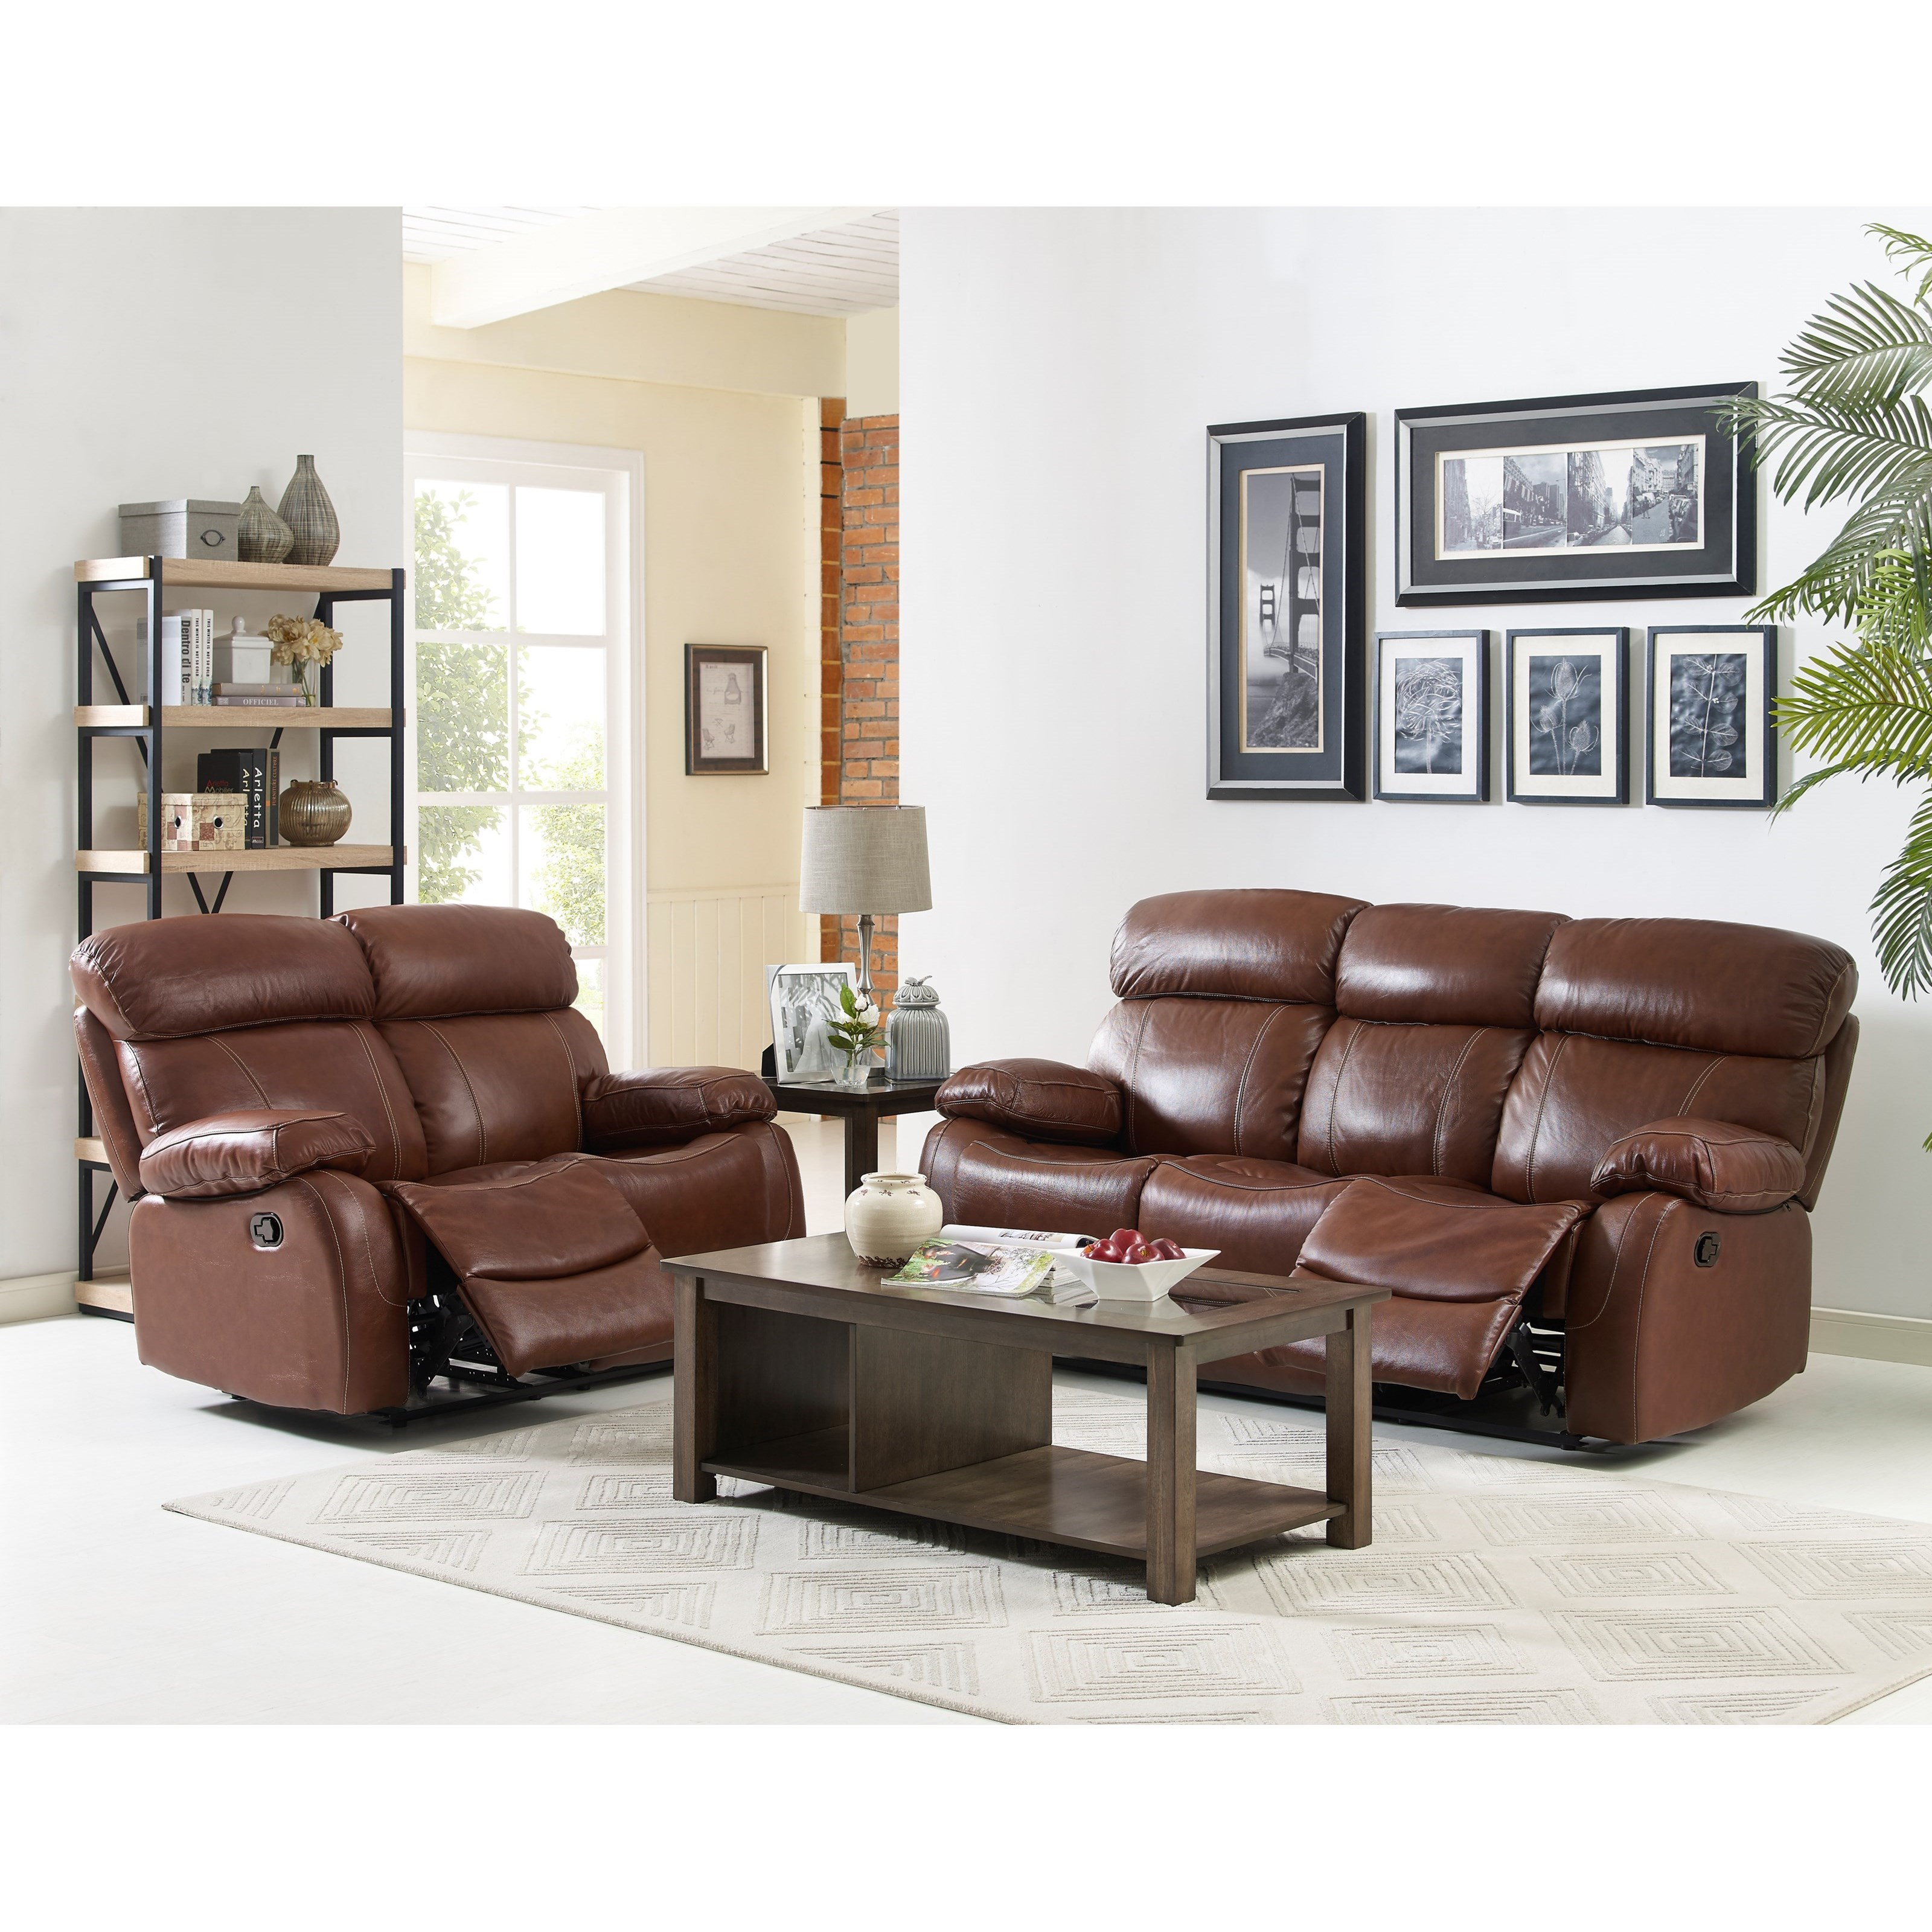 New Classic Dante Power Reclining Living Room Group - Item Number: L2041 Reclining Living Room Group 6